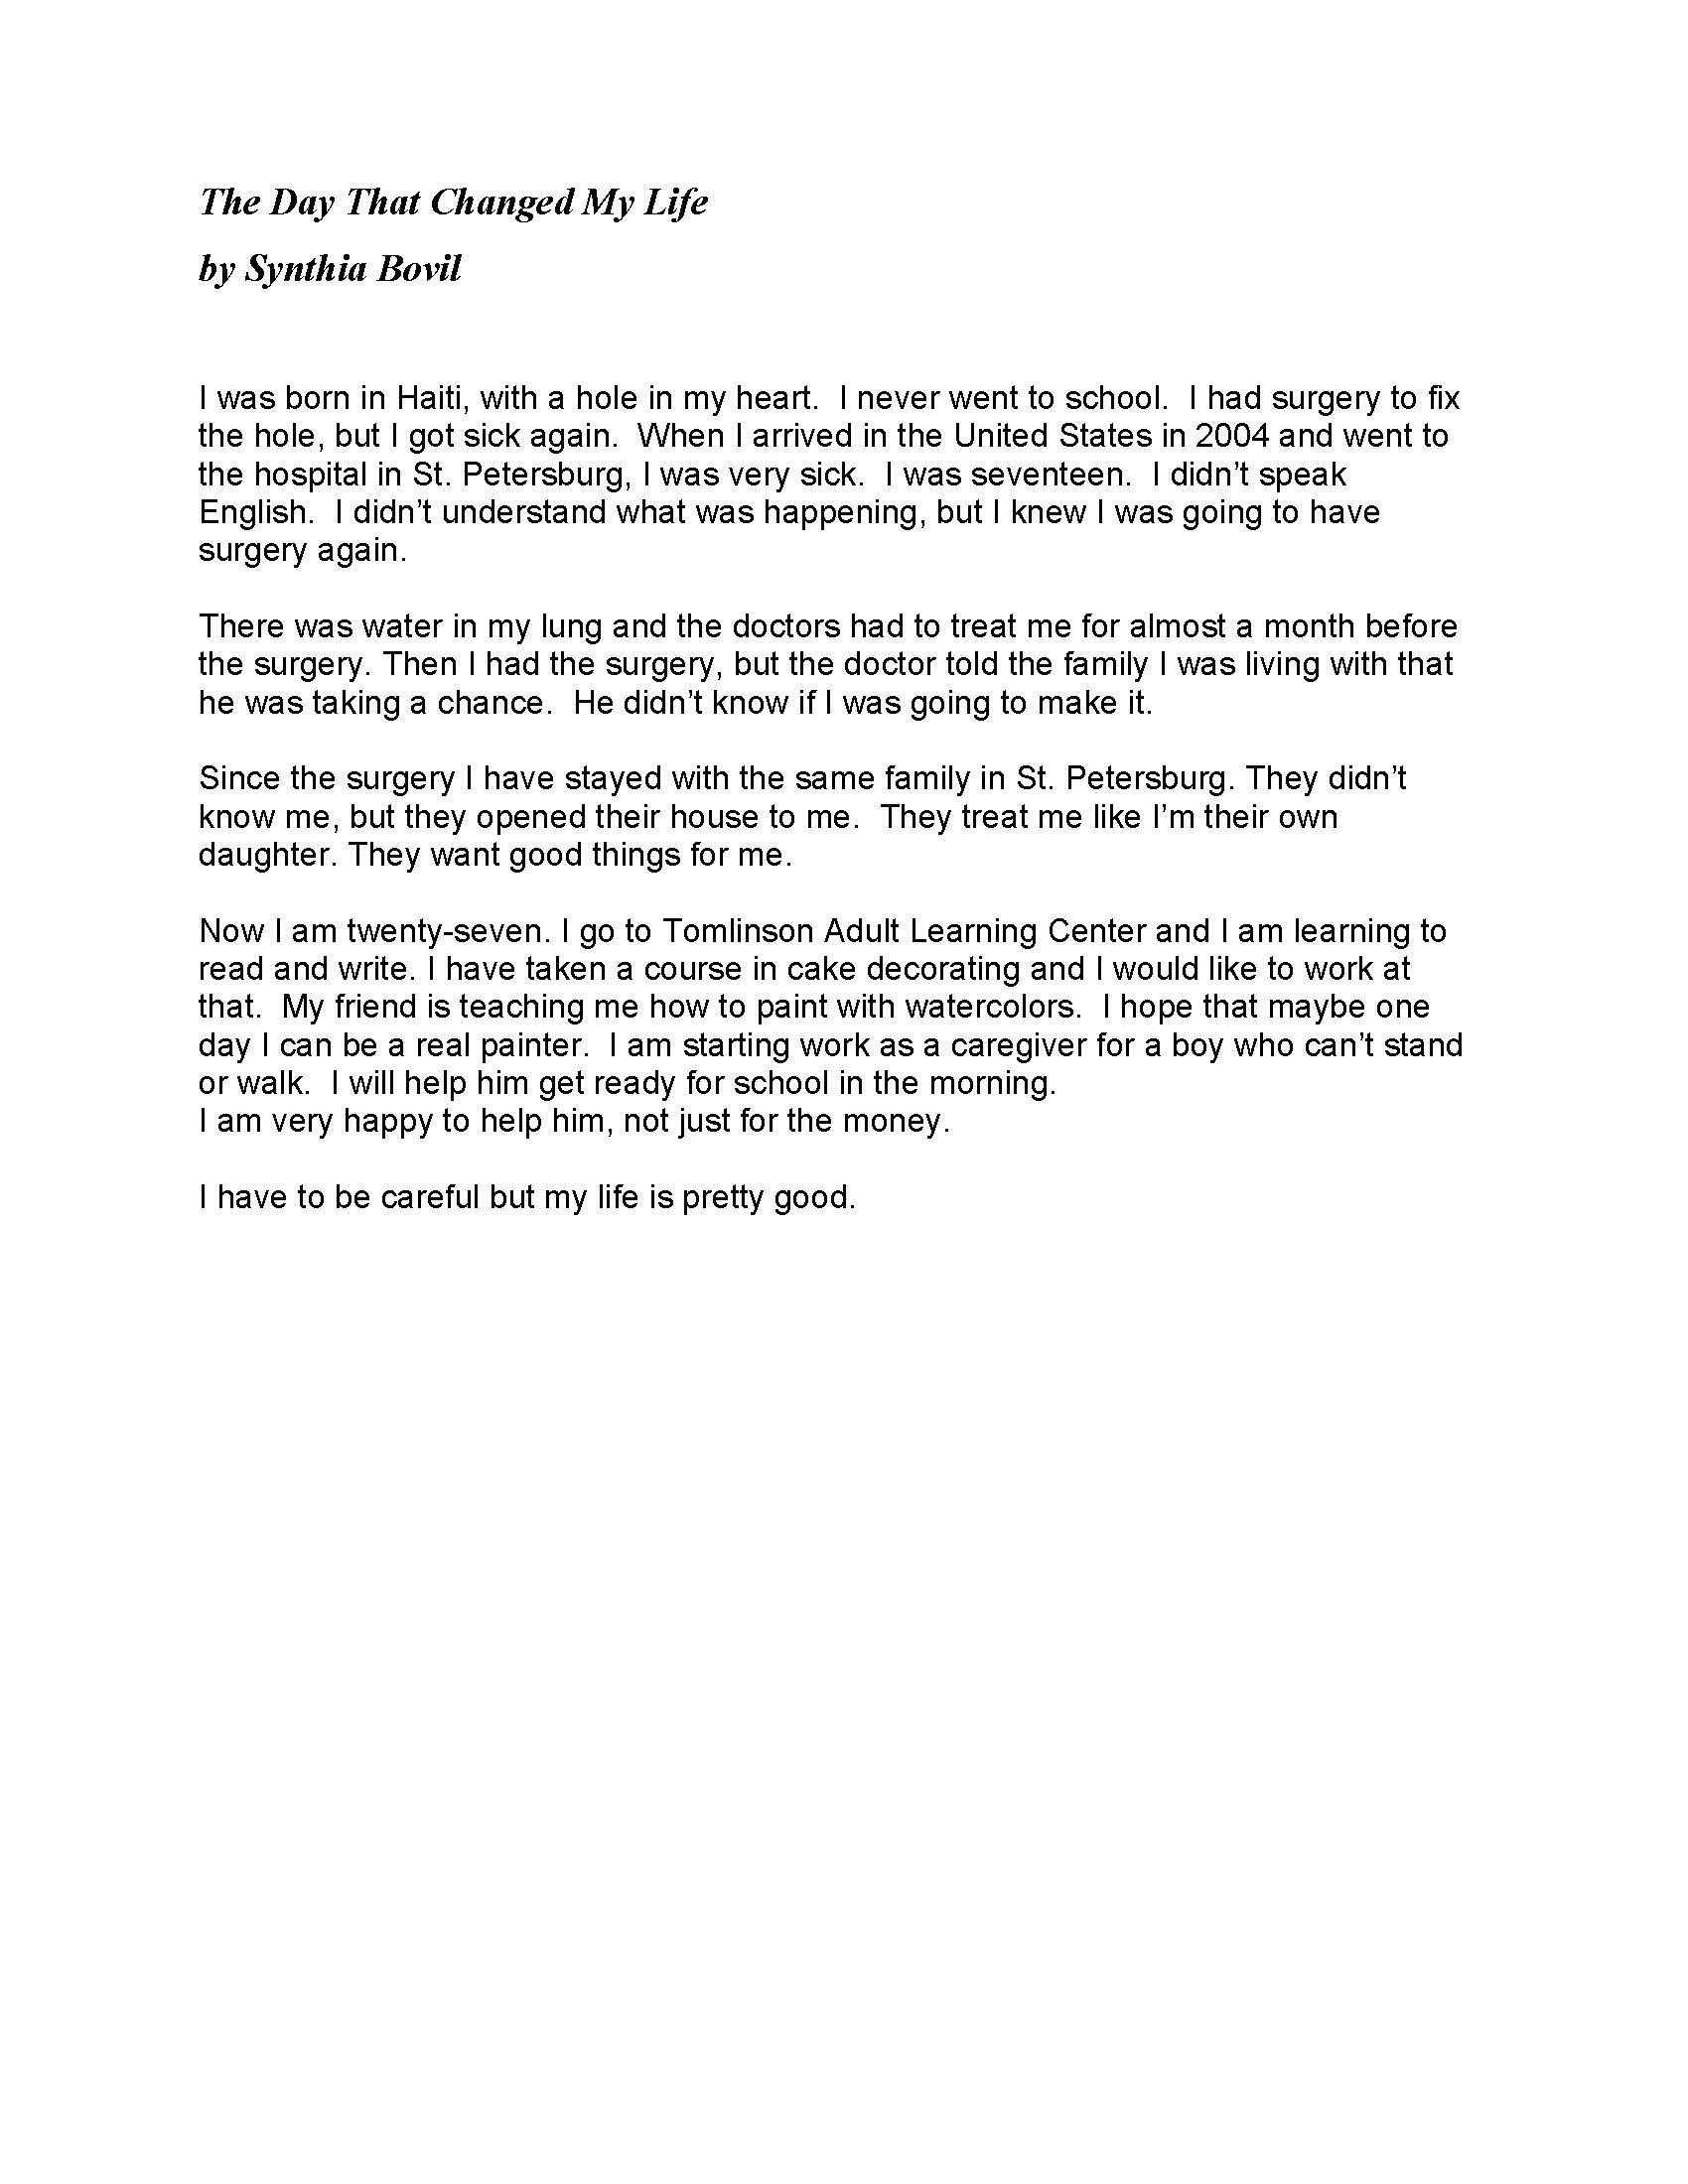 010 Essay Example Student Stories May 2014 Page 1 How Technology Has Changed Our Awesome Lives Pdf On For The Worst Full